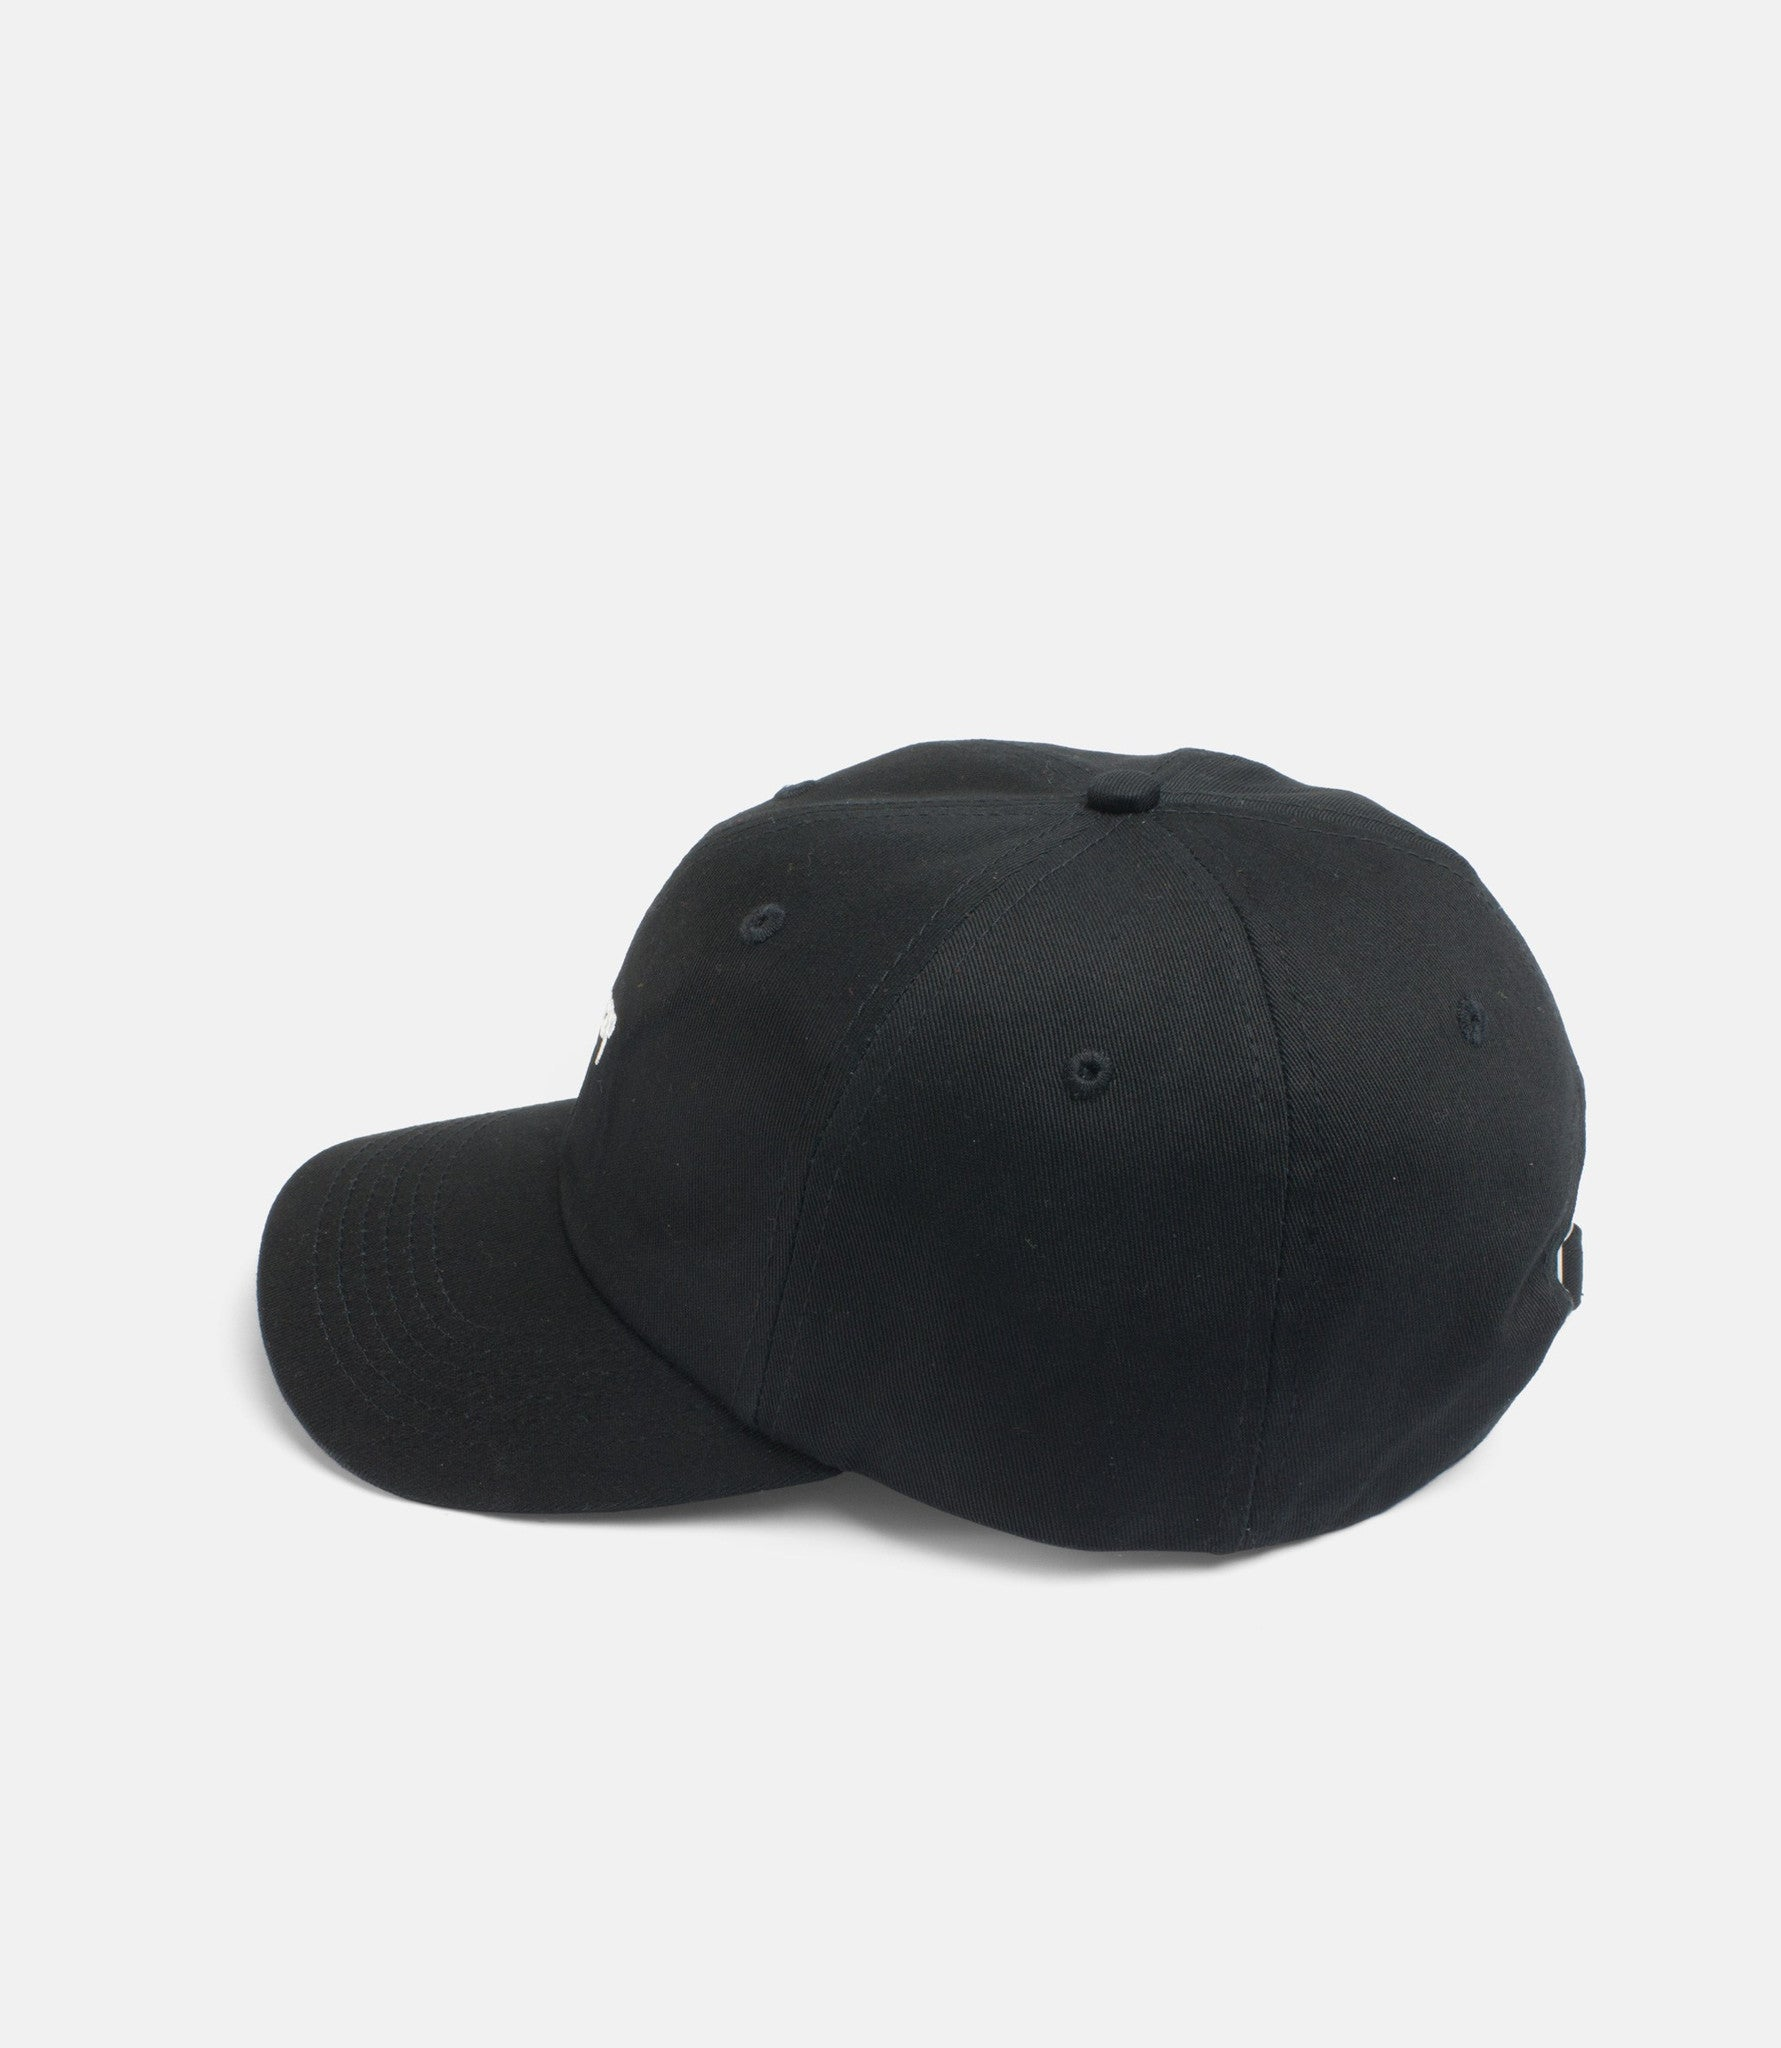 10Deep - Sound & Fury Strapback, Black - The Giant Peach - 5